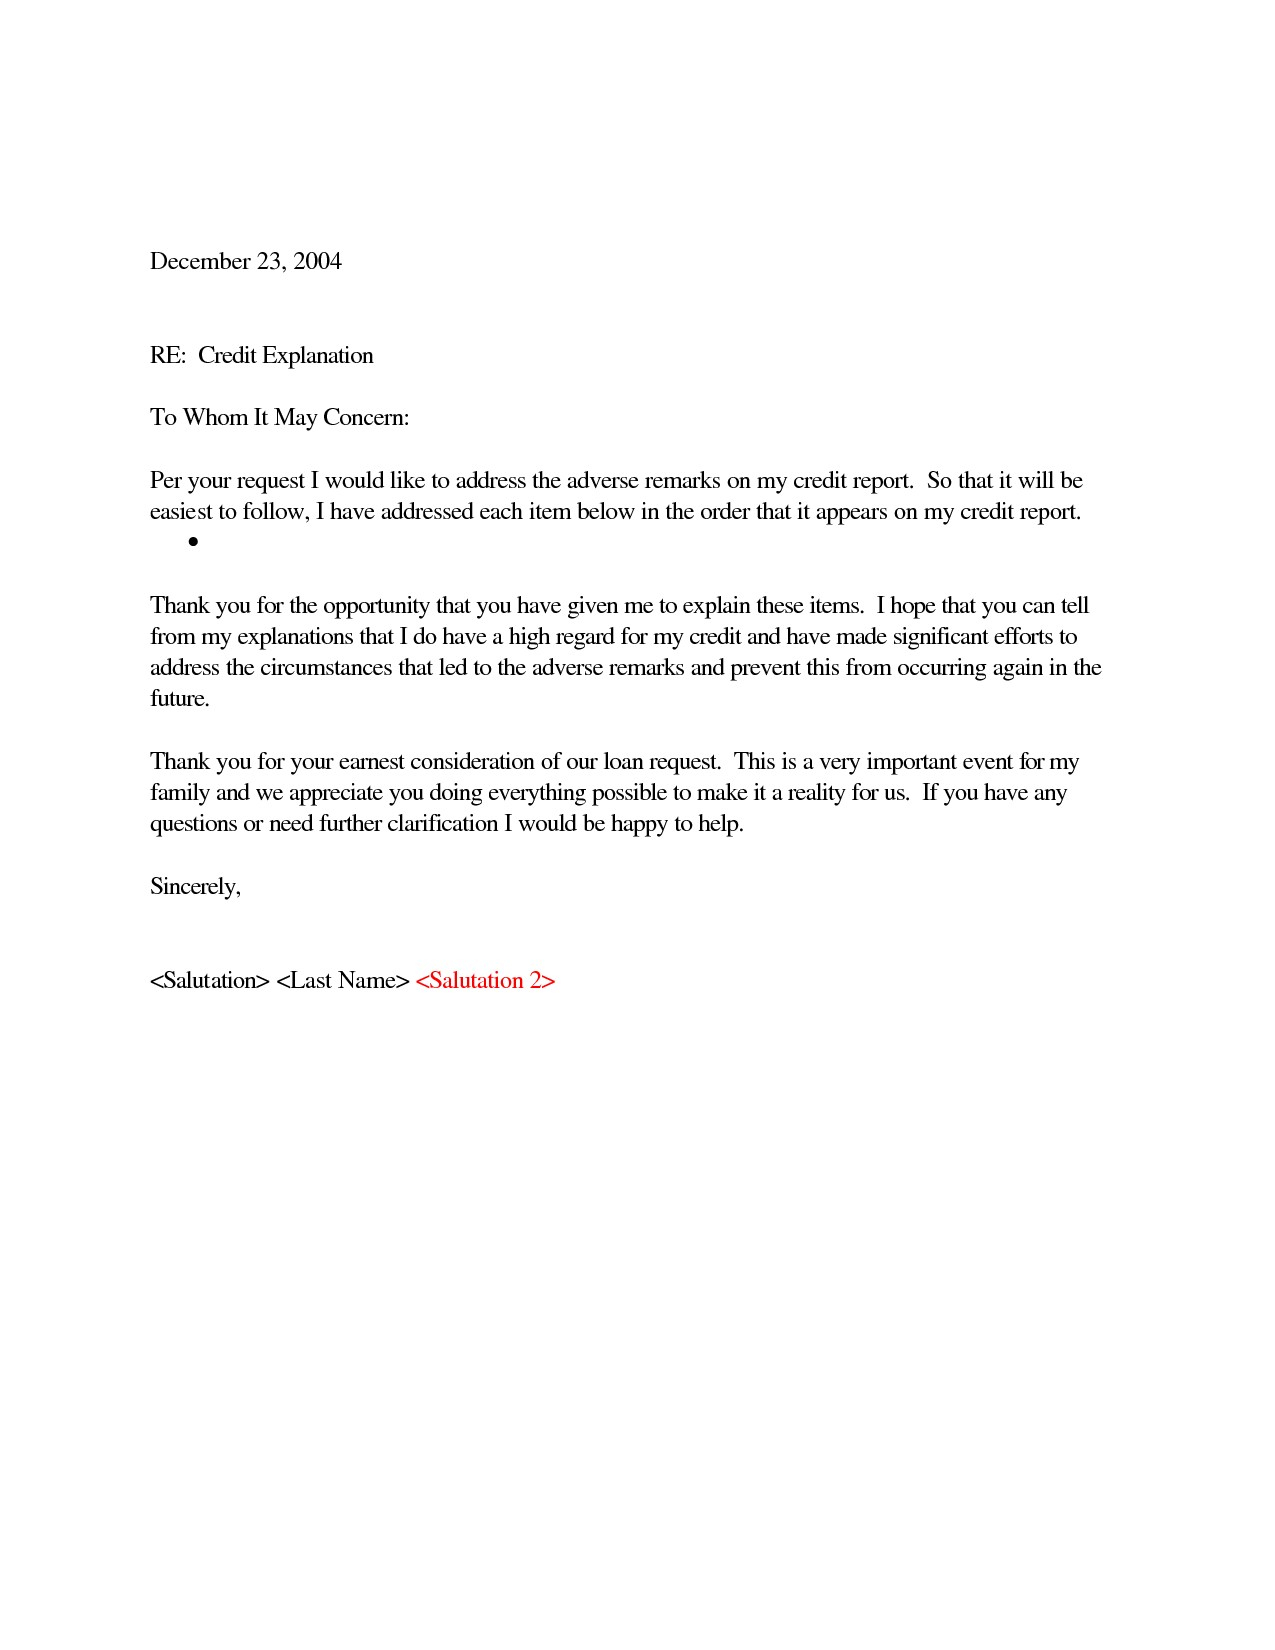 Cash Out Refinance Letter Of Explanation Template - Example Letter Explanation Job Gap Mortgage Refrence Letter